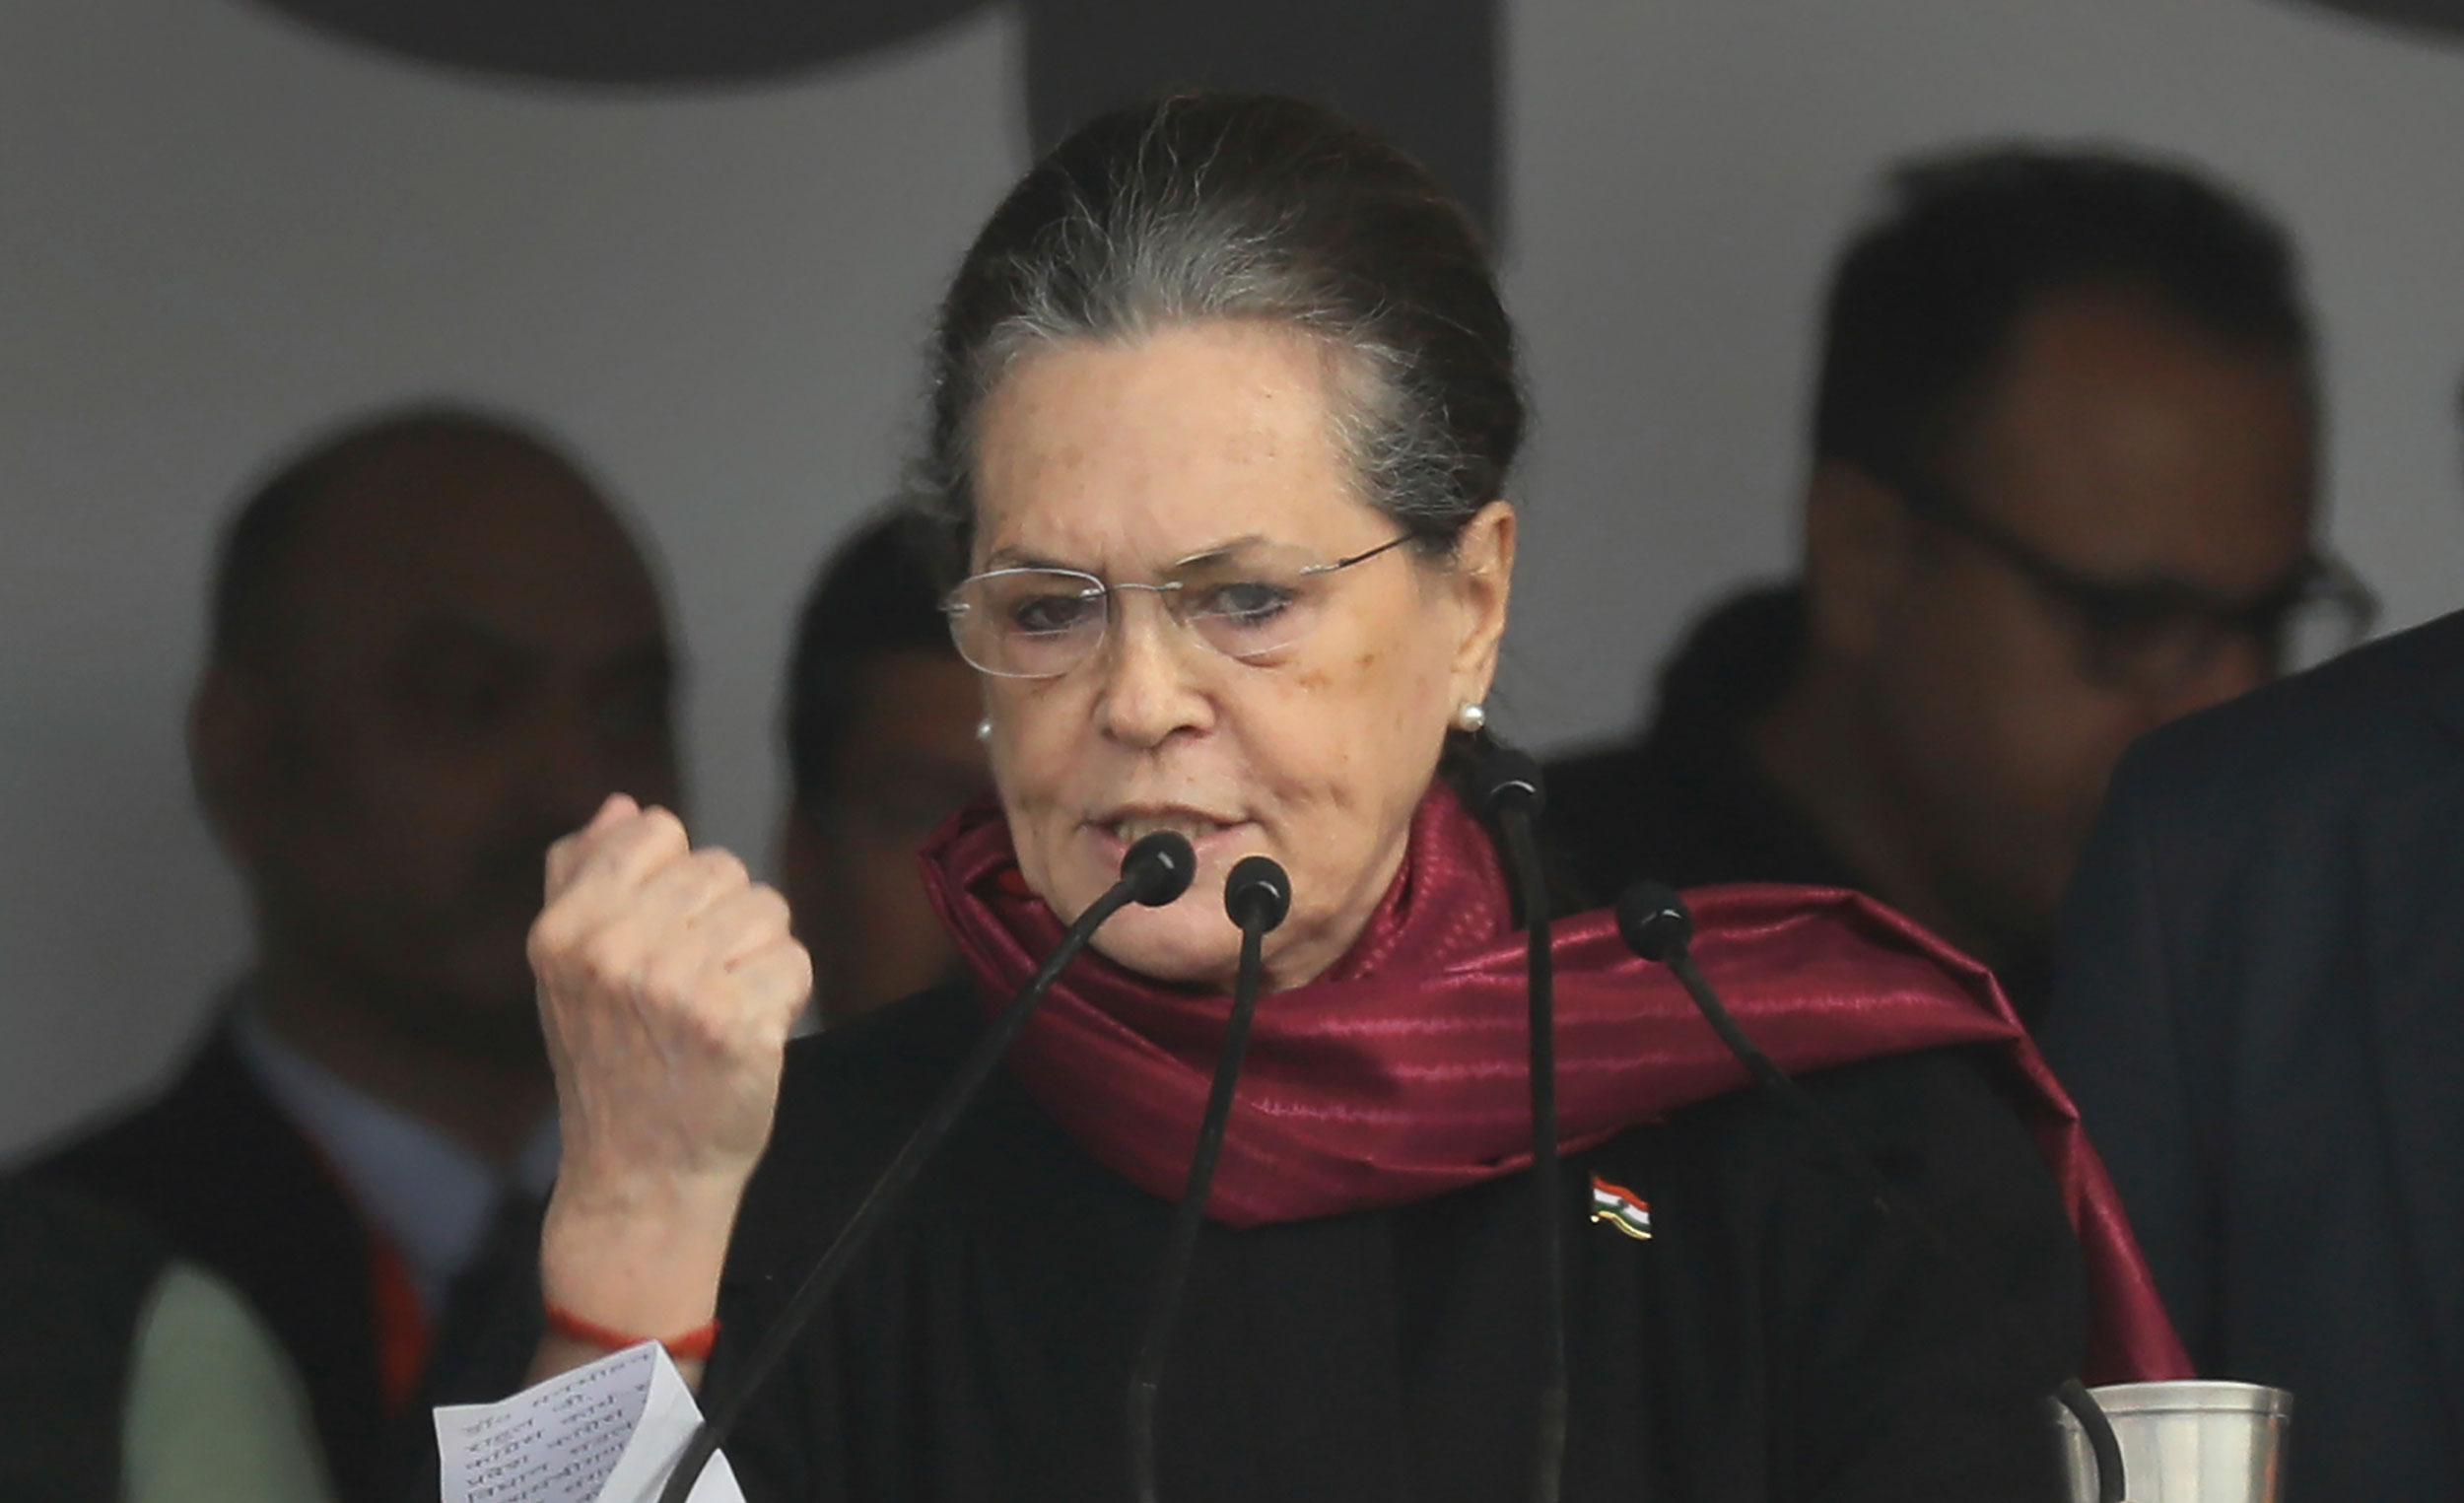 The meeting convened by Congress president Sonia Gandhi was attended by leaders of Opposition parties like NCP supremo Sharad Pawar, LJD chief Sharad Yadav, Left leaders Sitaram Yechury and D. Raja,